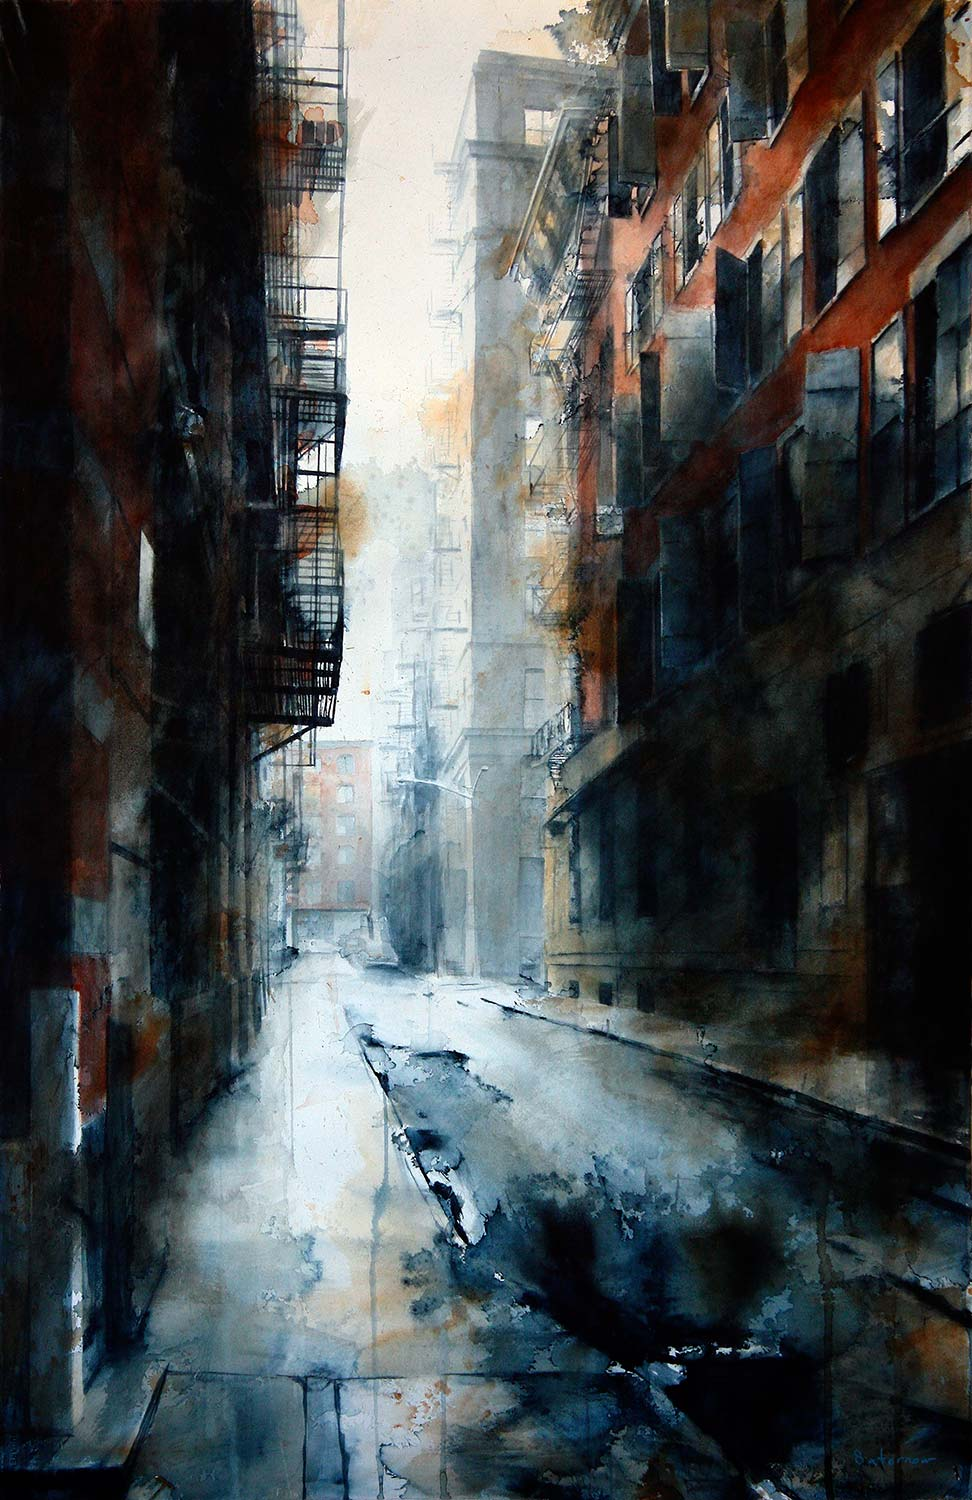 Cortlandt Alley Morning, rain